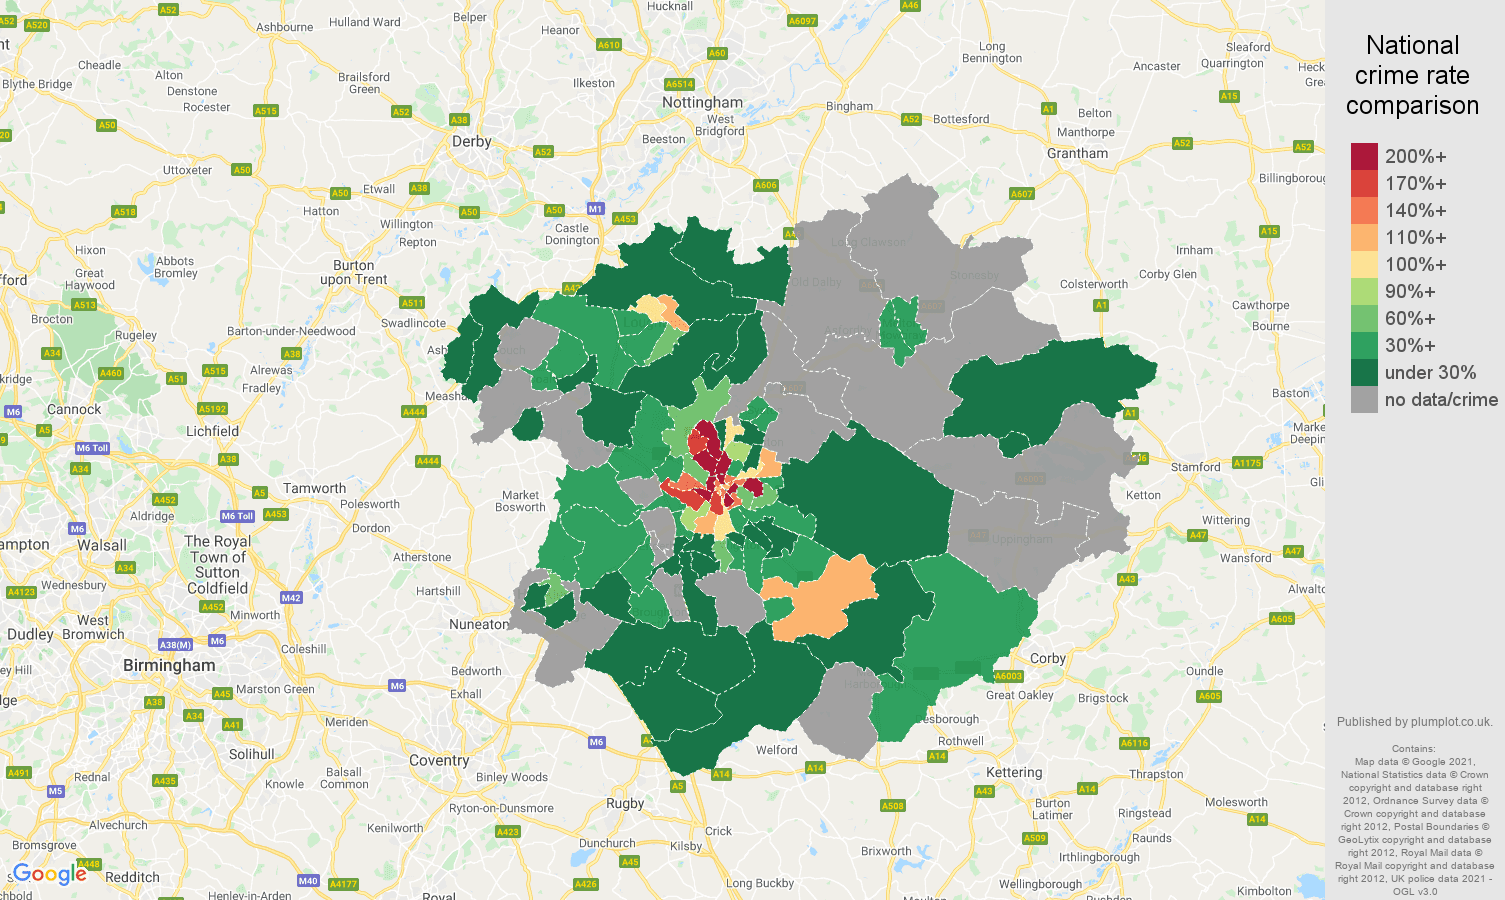 Leicester robbery crime rate comparison map